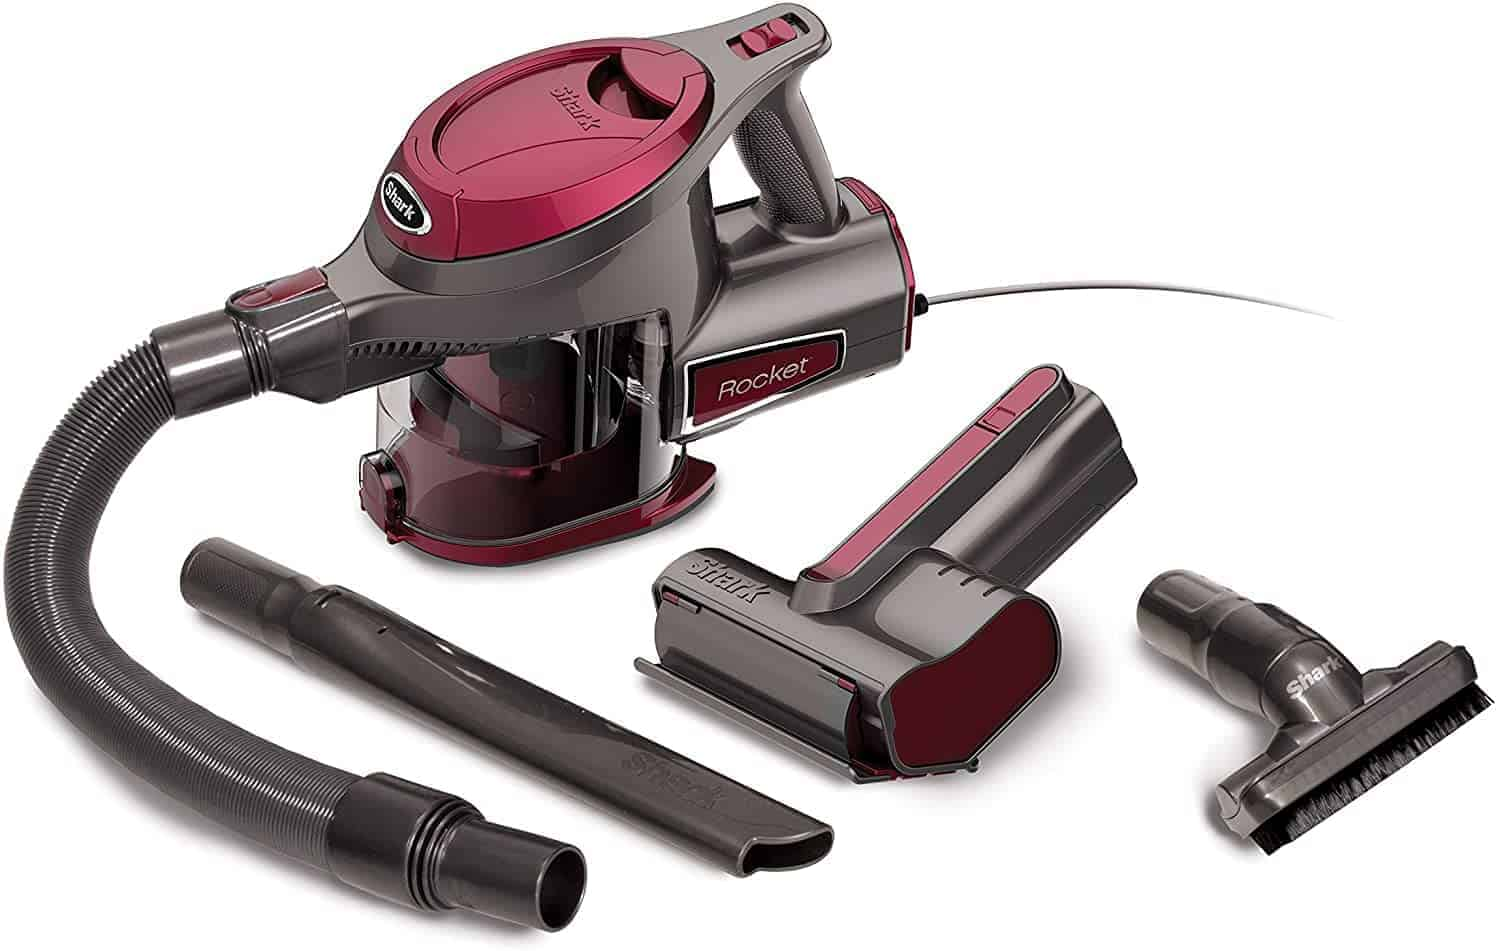 Best Dustbuster with a Hose: Shark Rocket Ultra-Light